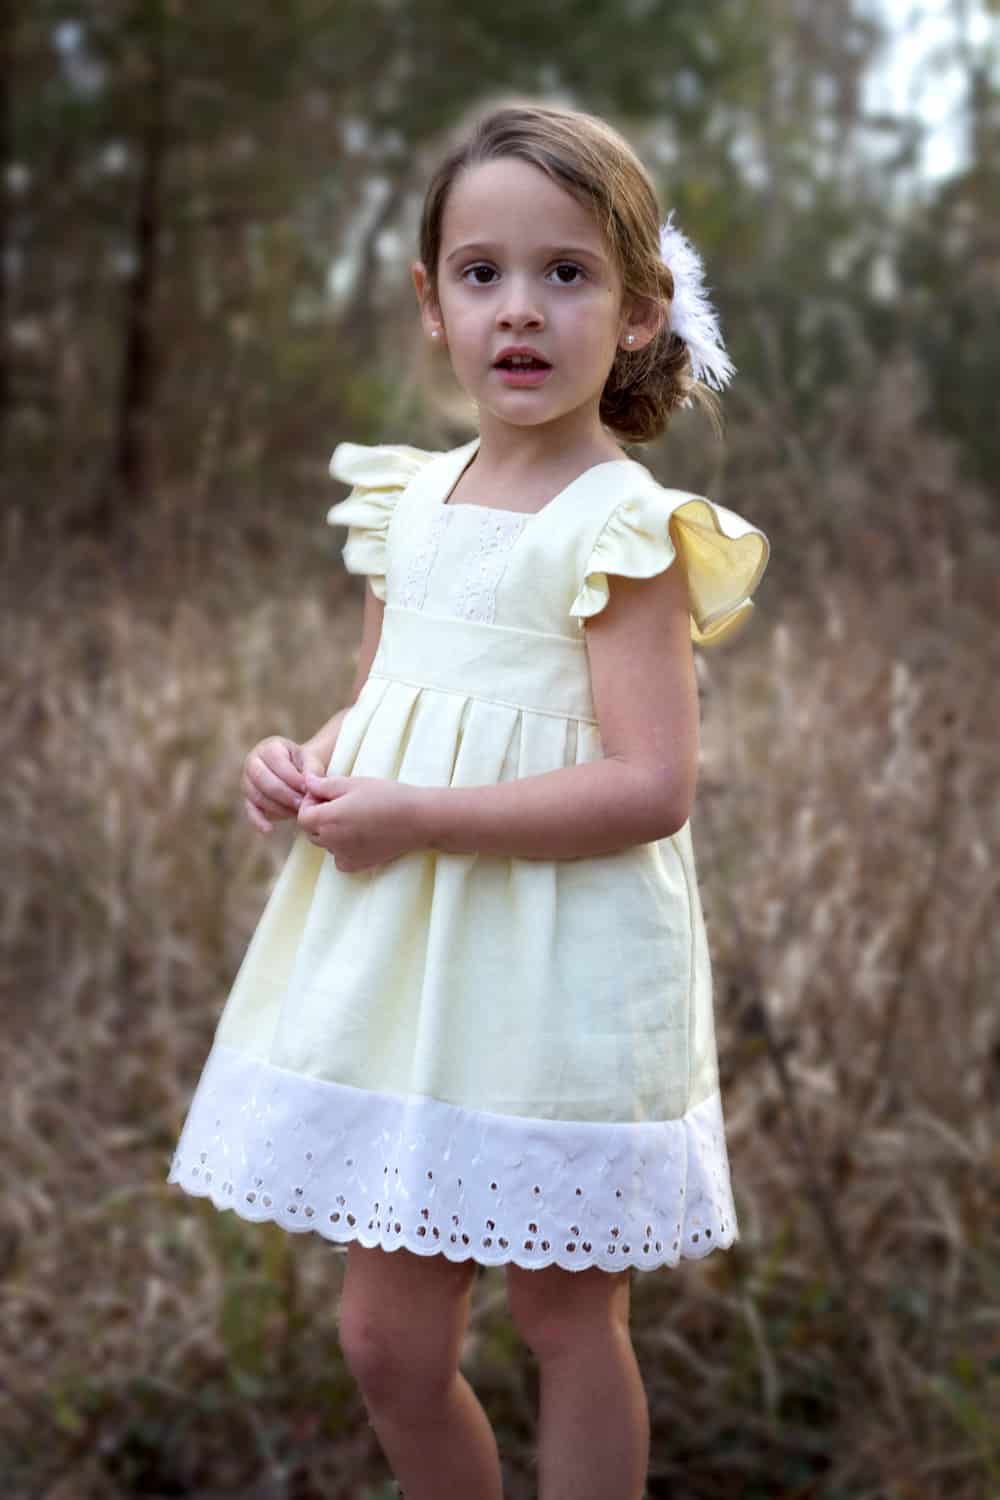 6bcc12c1d Girls Southern Belle Dress. Vintage Children's Clothes. Handmade Apparel  for Girls, Toddlers,